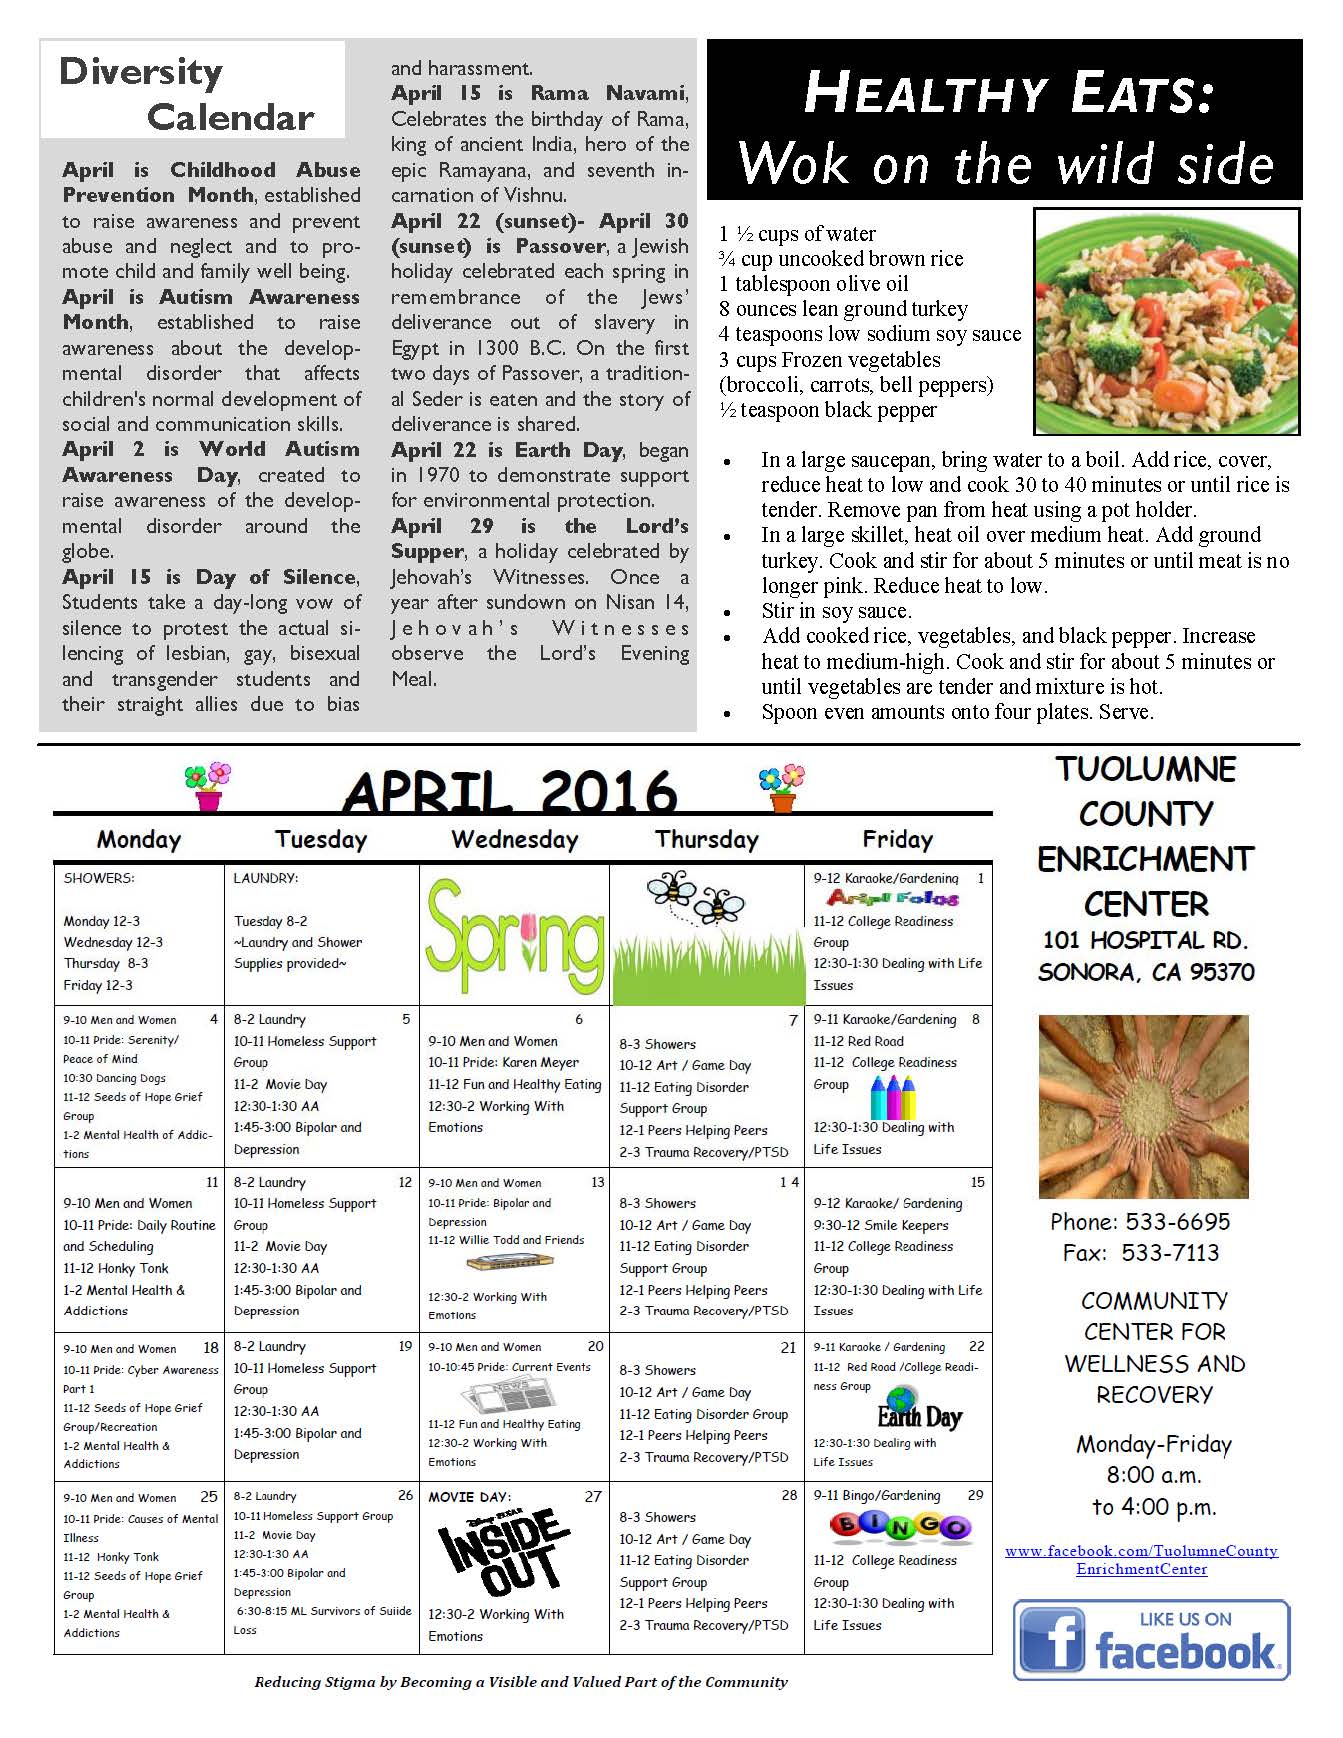 Beh Health April Newsletter Page 4